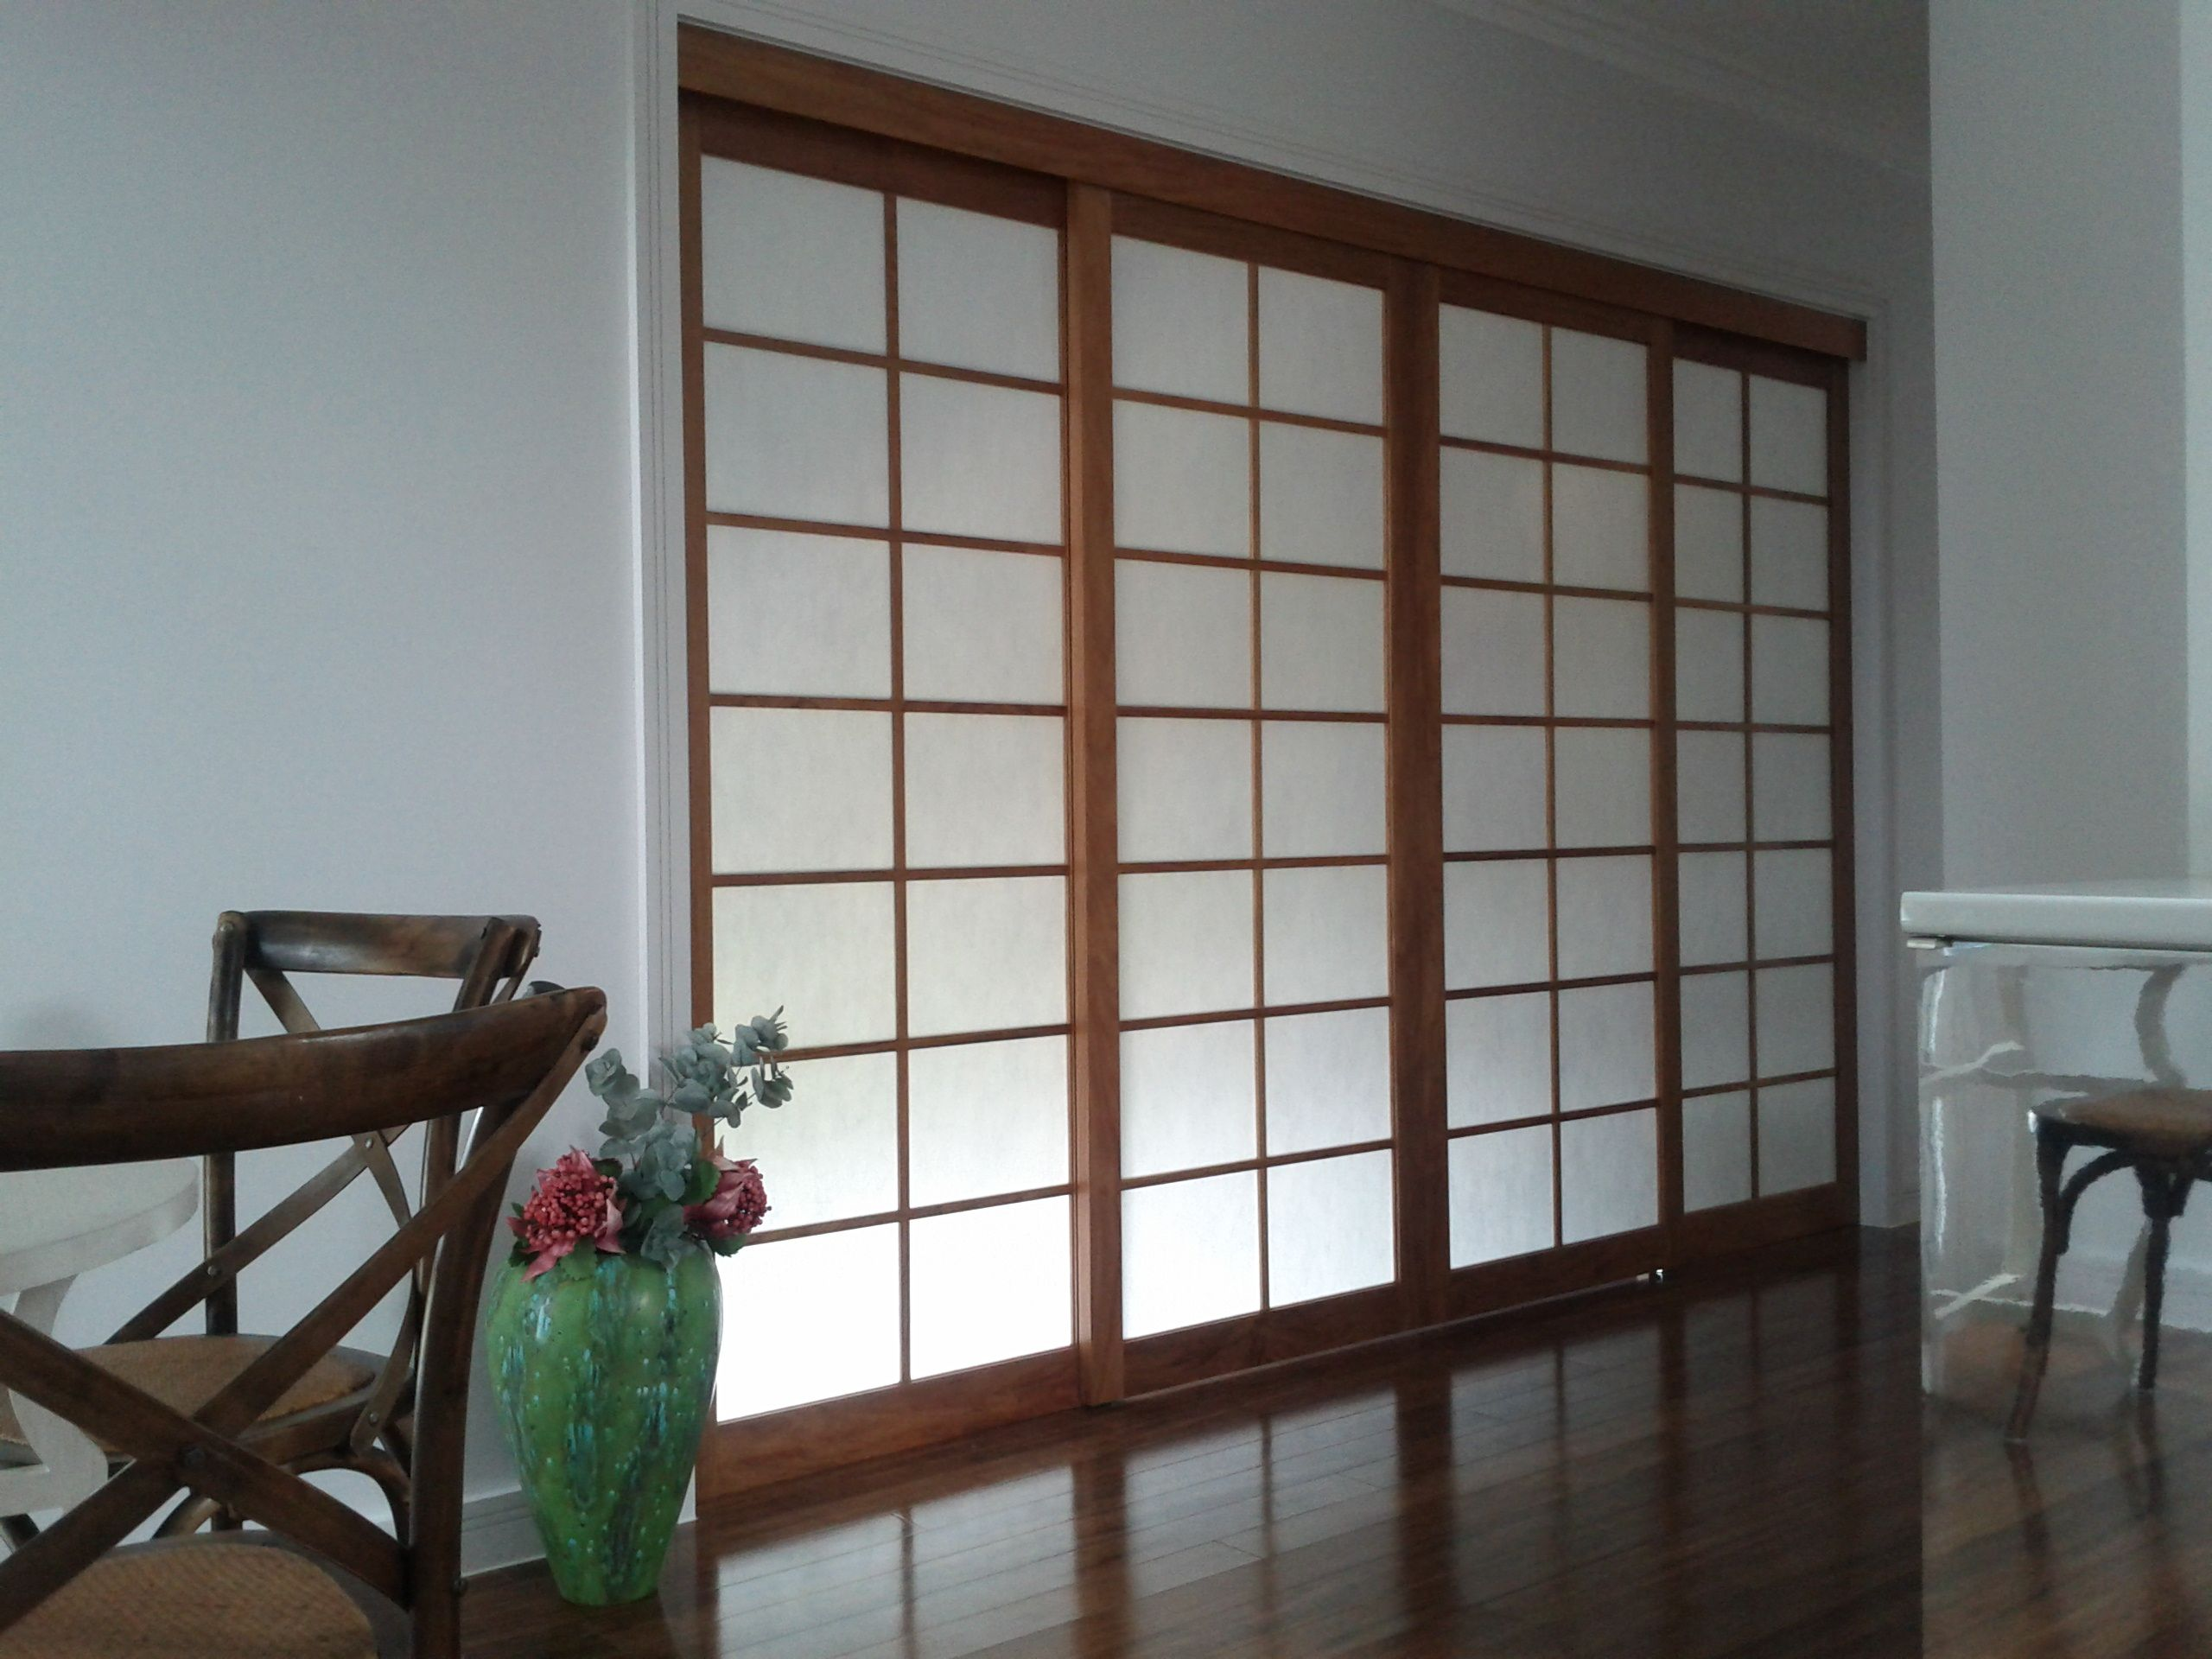 blinds a luxaflex perfect pin panel room divider as glide window for large sliding or door